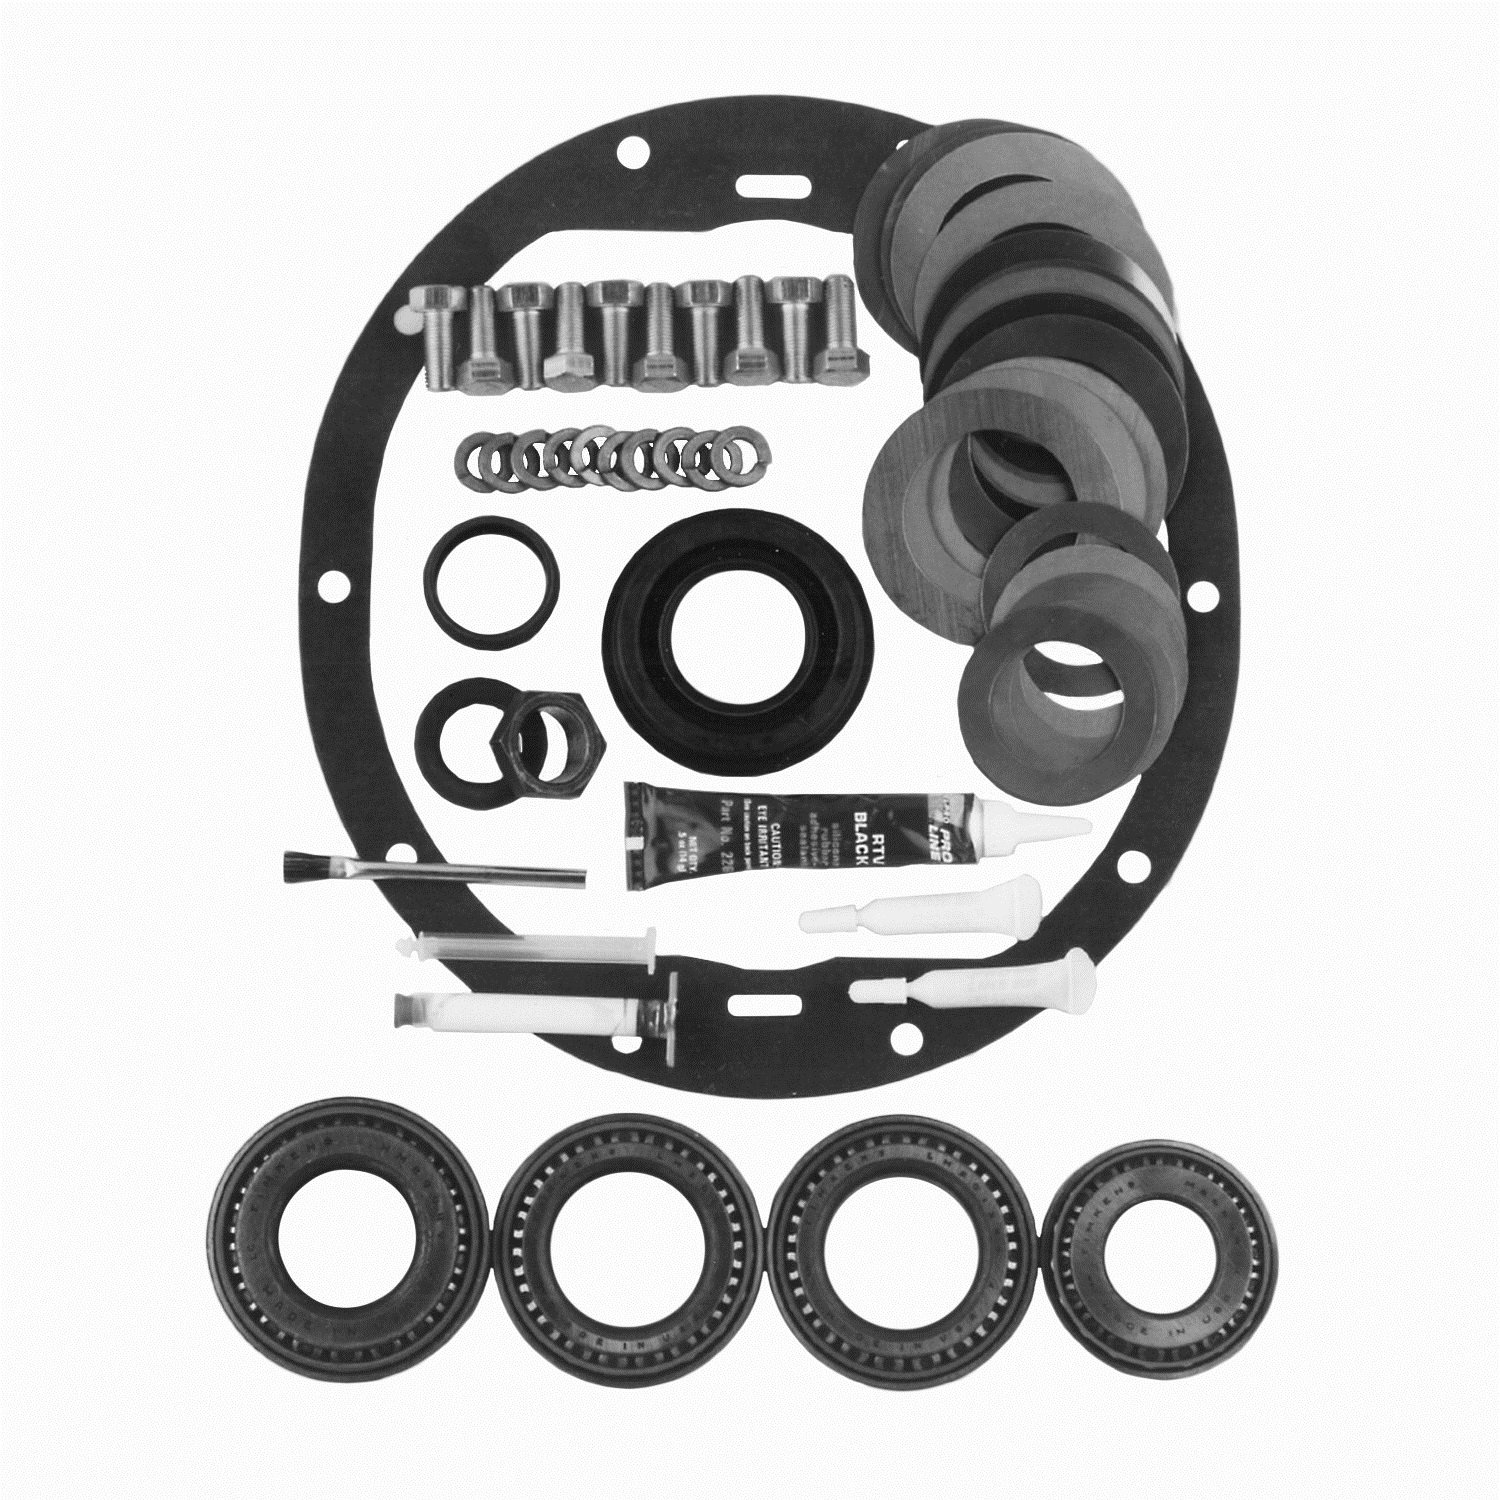 83-1084 Richmond Install Kit